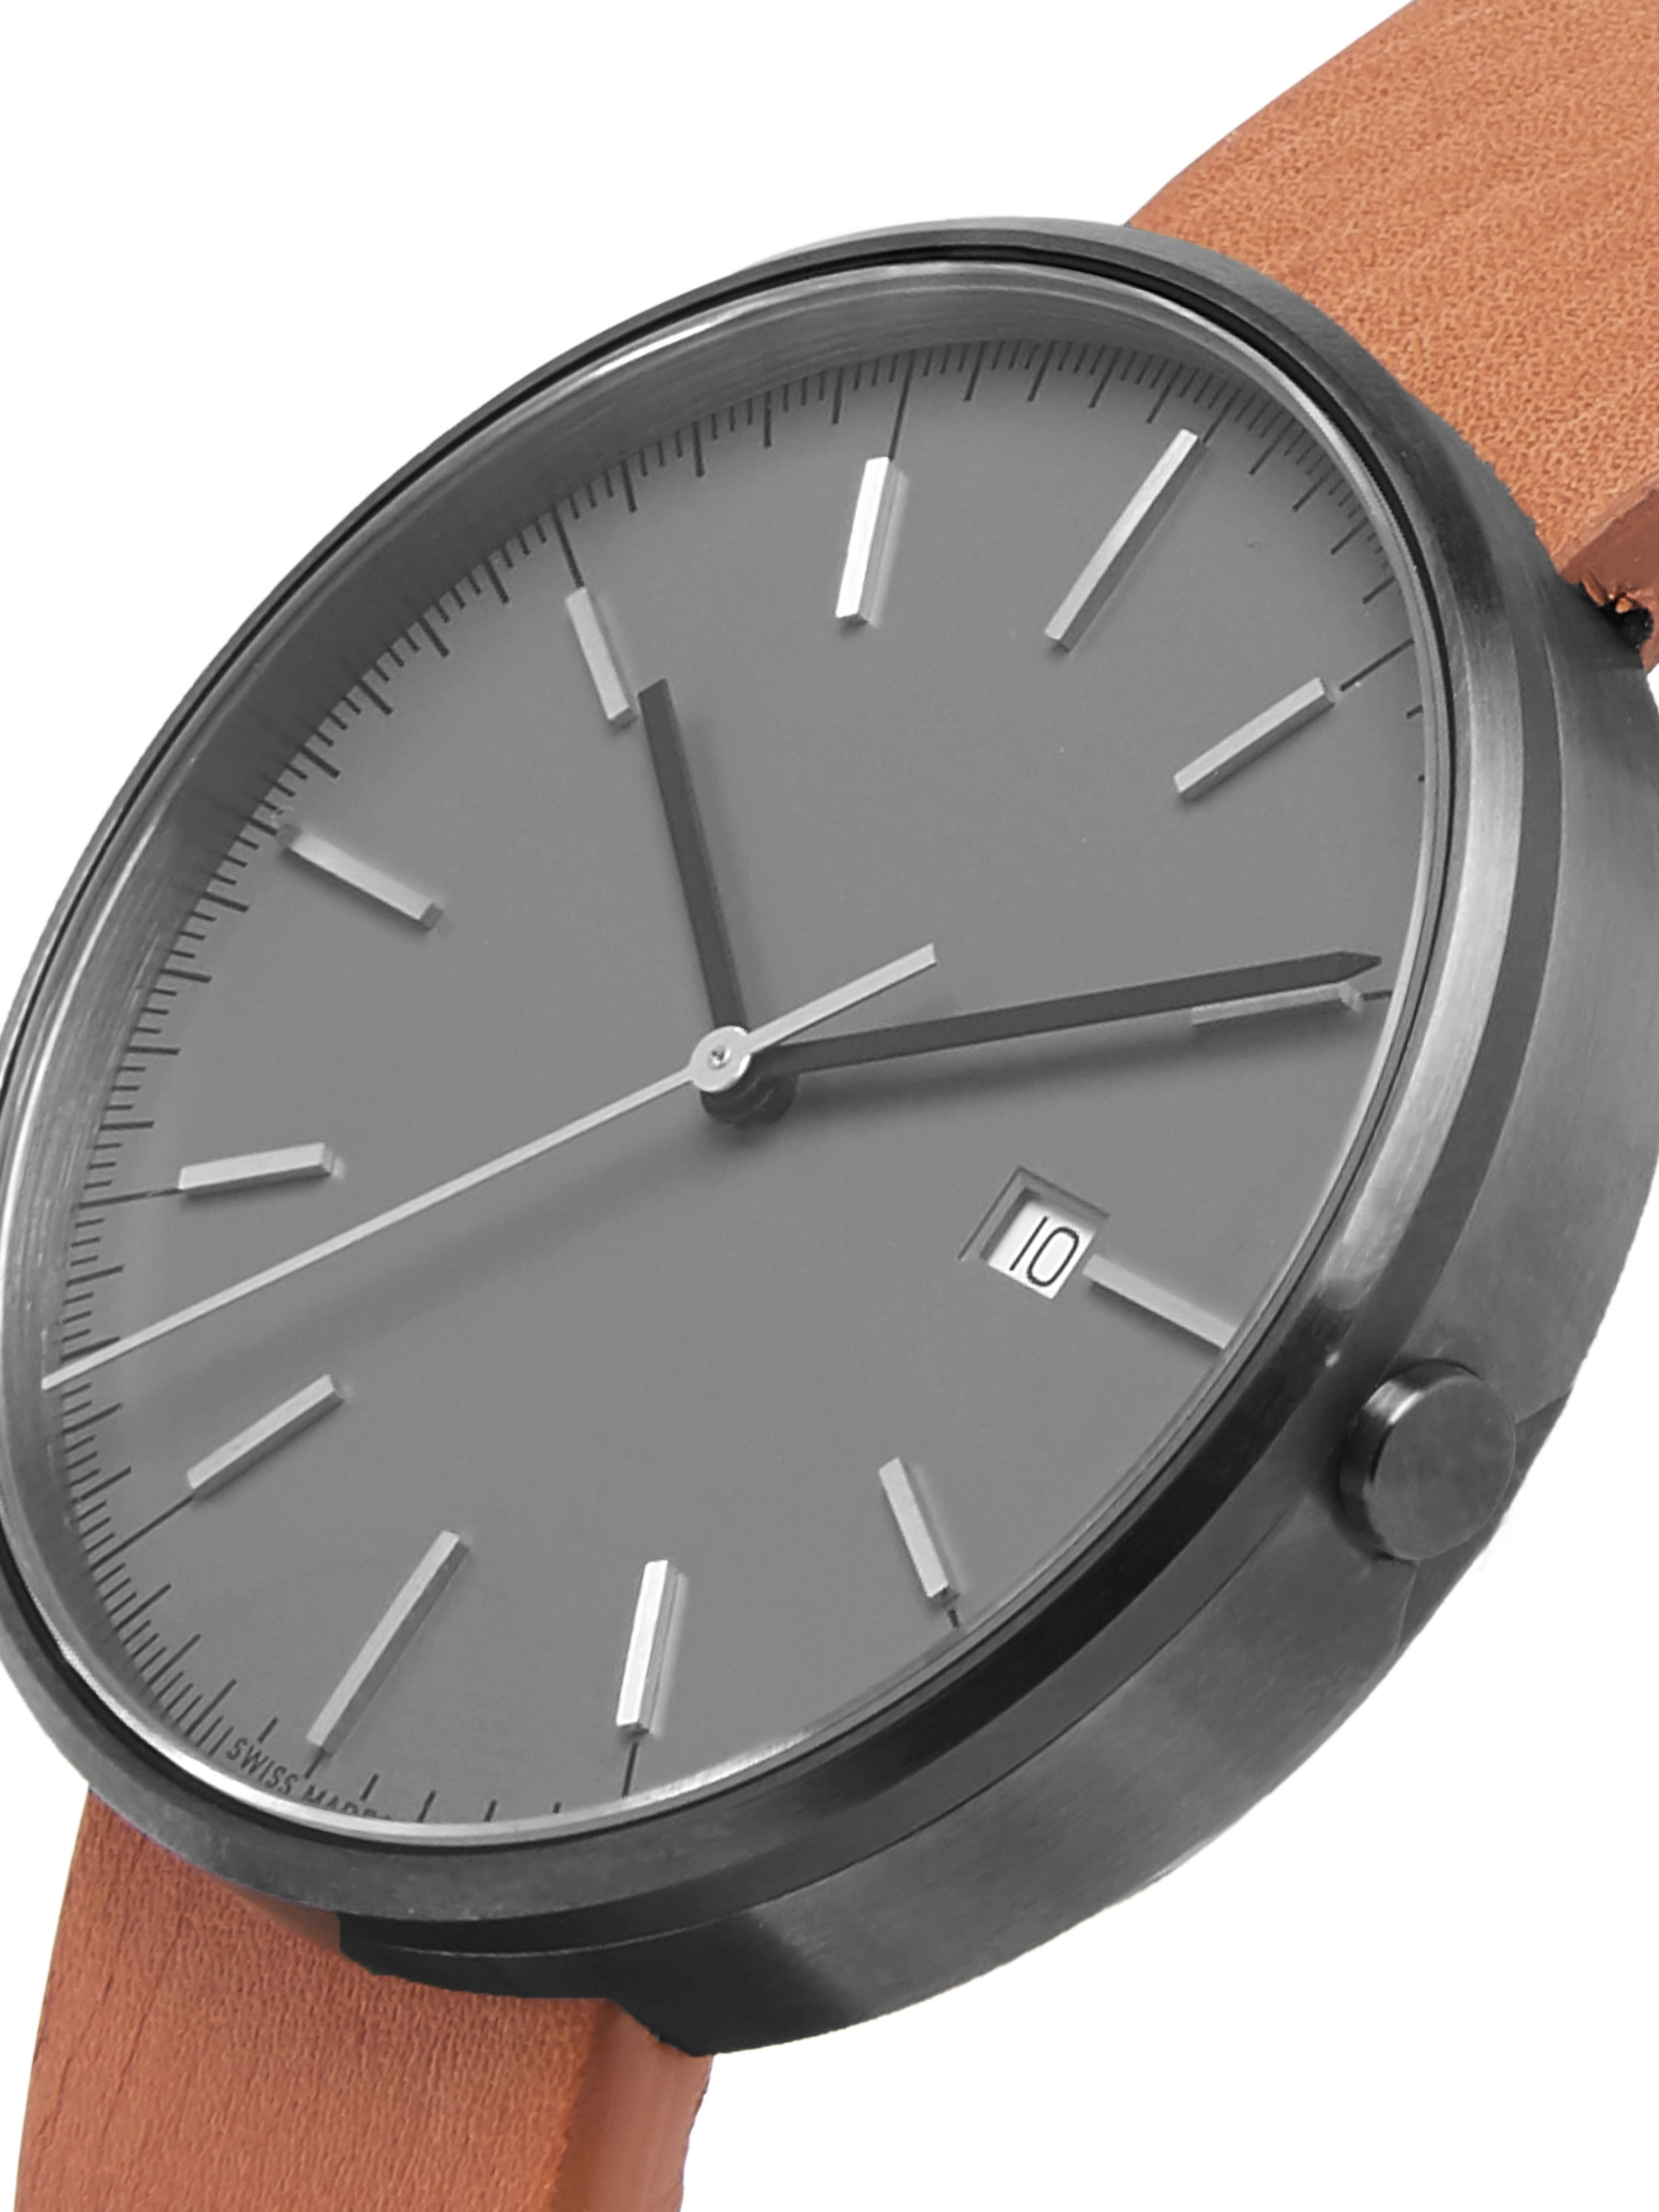 Uniform Wares M40 PreciDrive Stainless Steel and Leather Watch